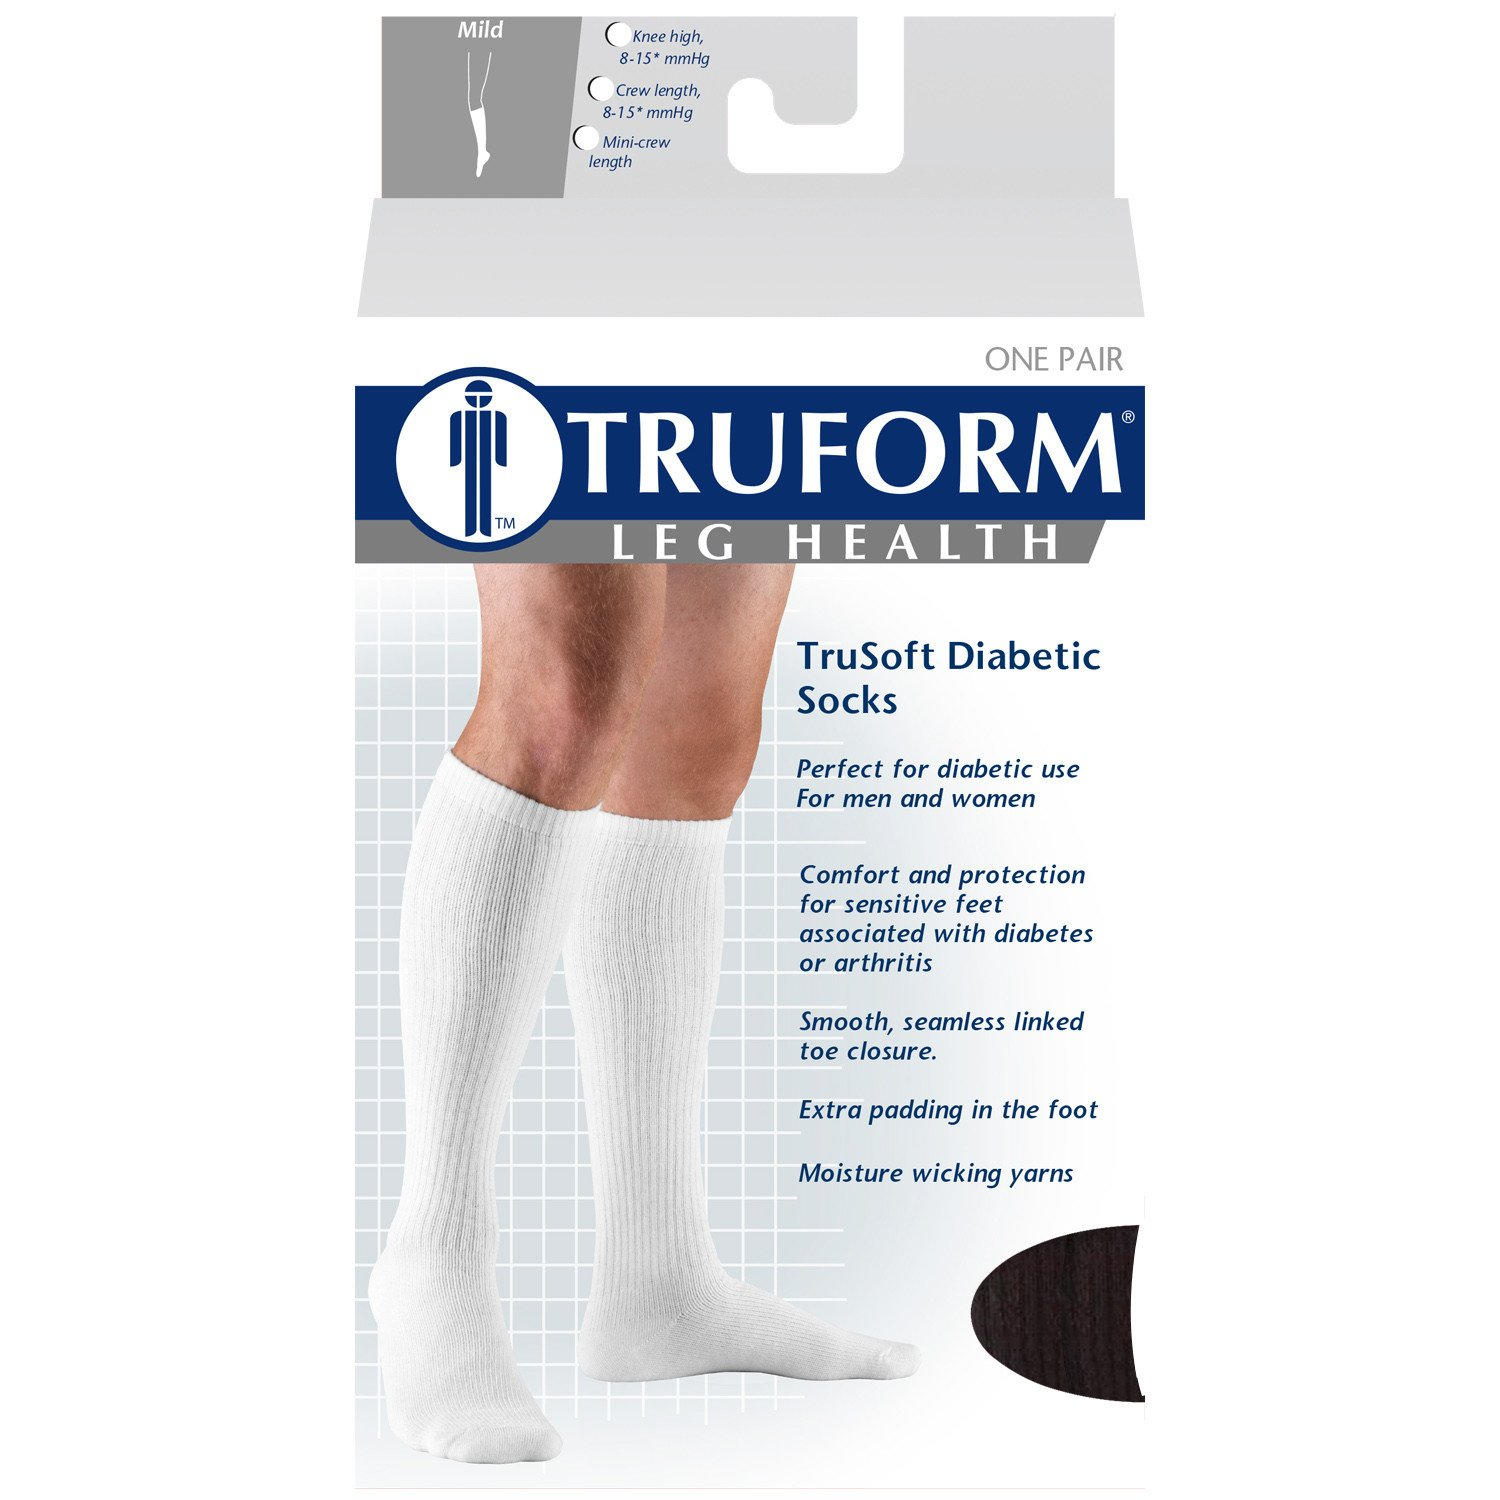 Amazon.com: Truform Cushioned 8-15 mmHg Crew Length Compression Socks for Men and Women, Black, Large: Health & Personal Care